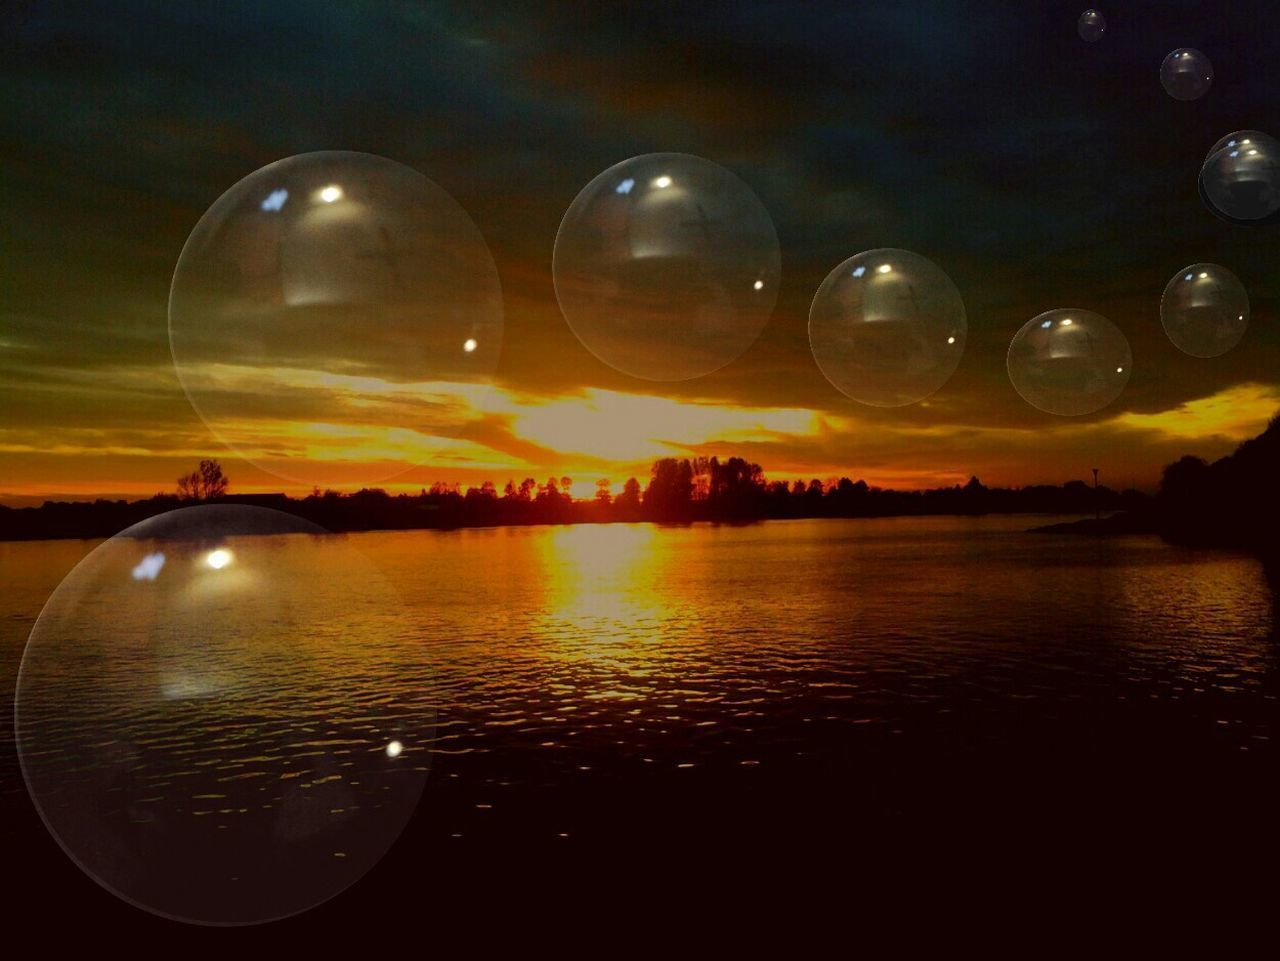 Sureal Landscape DreamScapes Hollands Droom Landschappen The World Needs More Bubbles Bubbles Floating Across The Universe https://youtu.be/AZ5WPXxNzPU Showcase: December RePicture Growth My Best Photo 2015